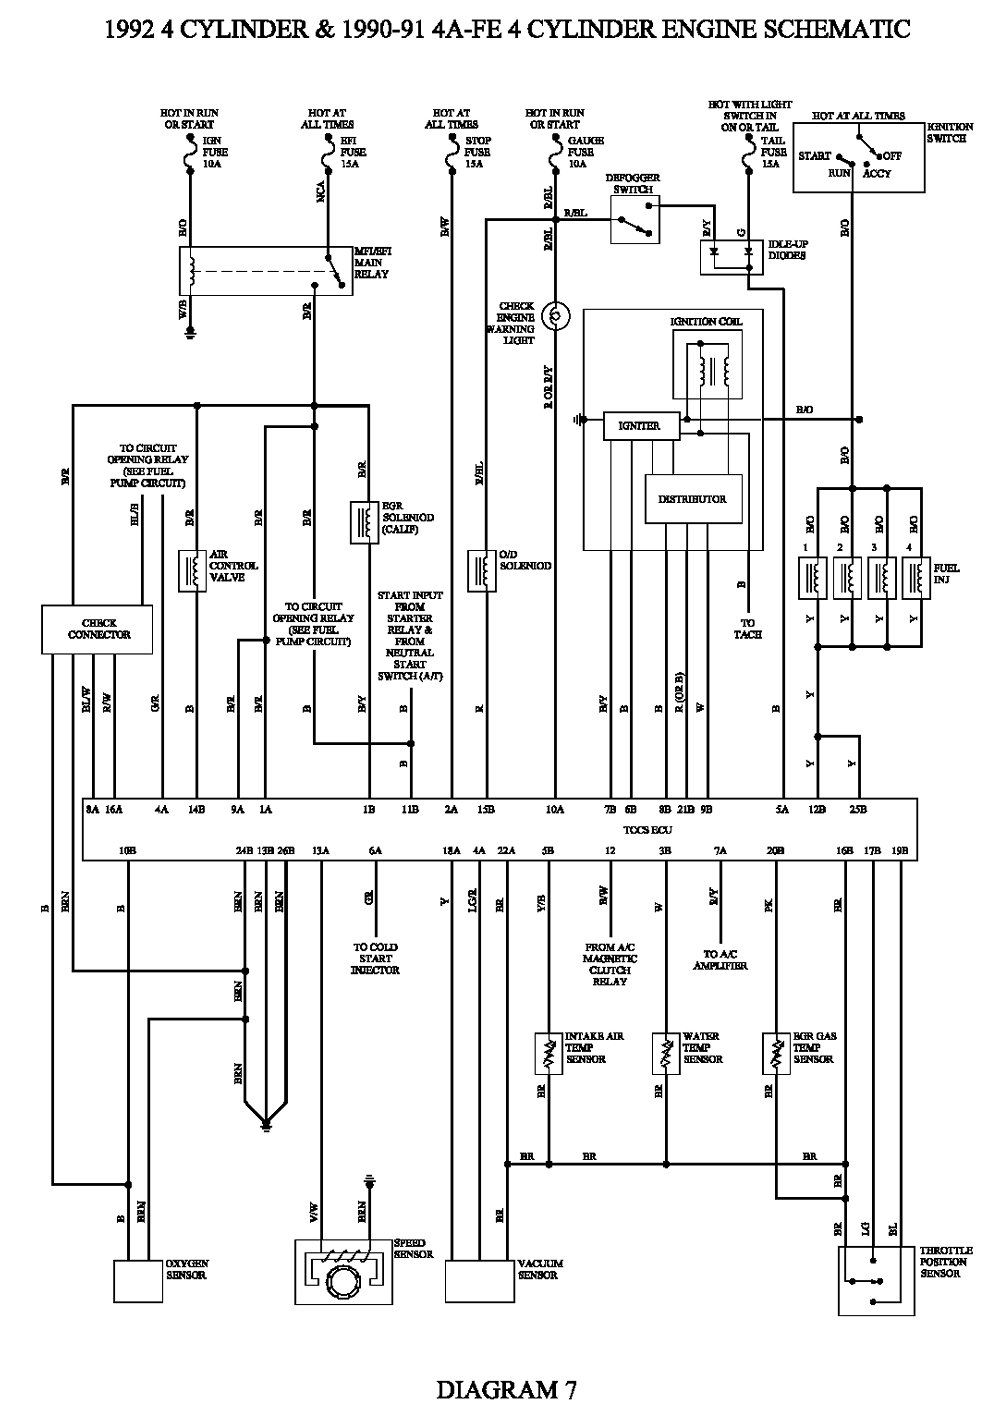 Download Diagram Wiring Diagram Toyota Corolla Dx Hd Quality Diagramist Freiheitfuermumia De